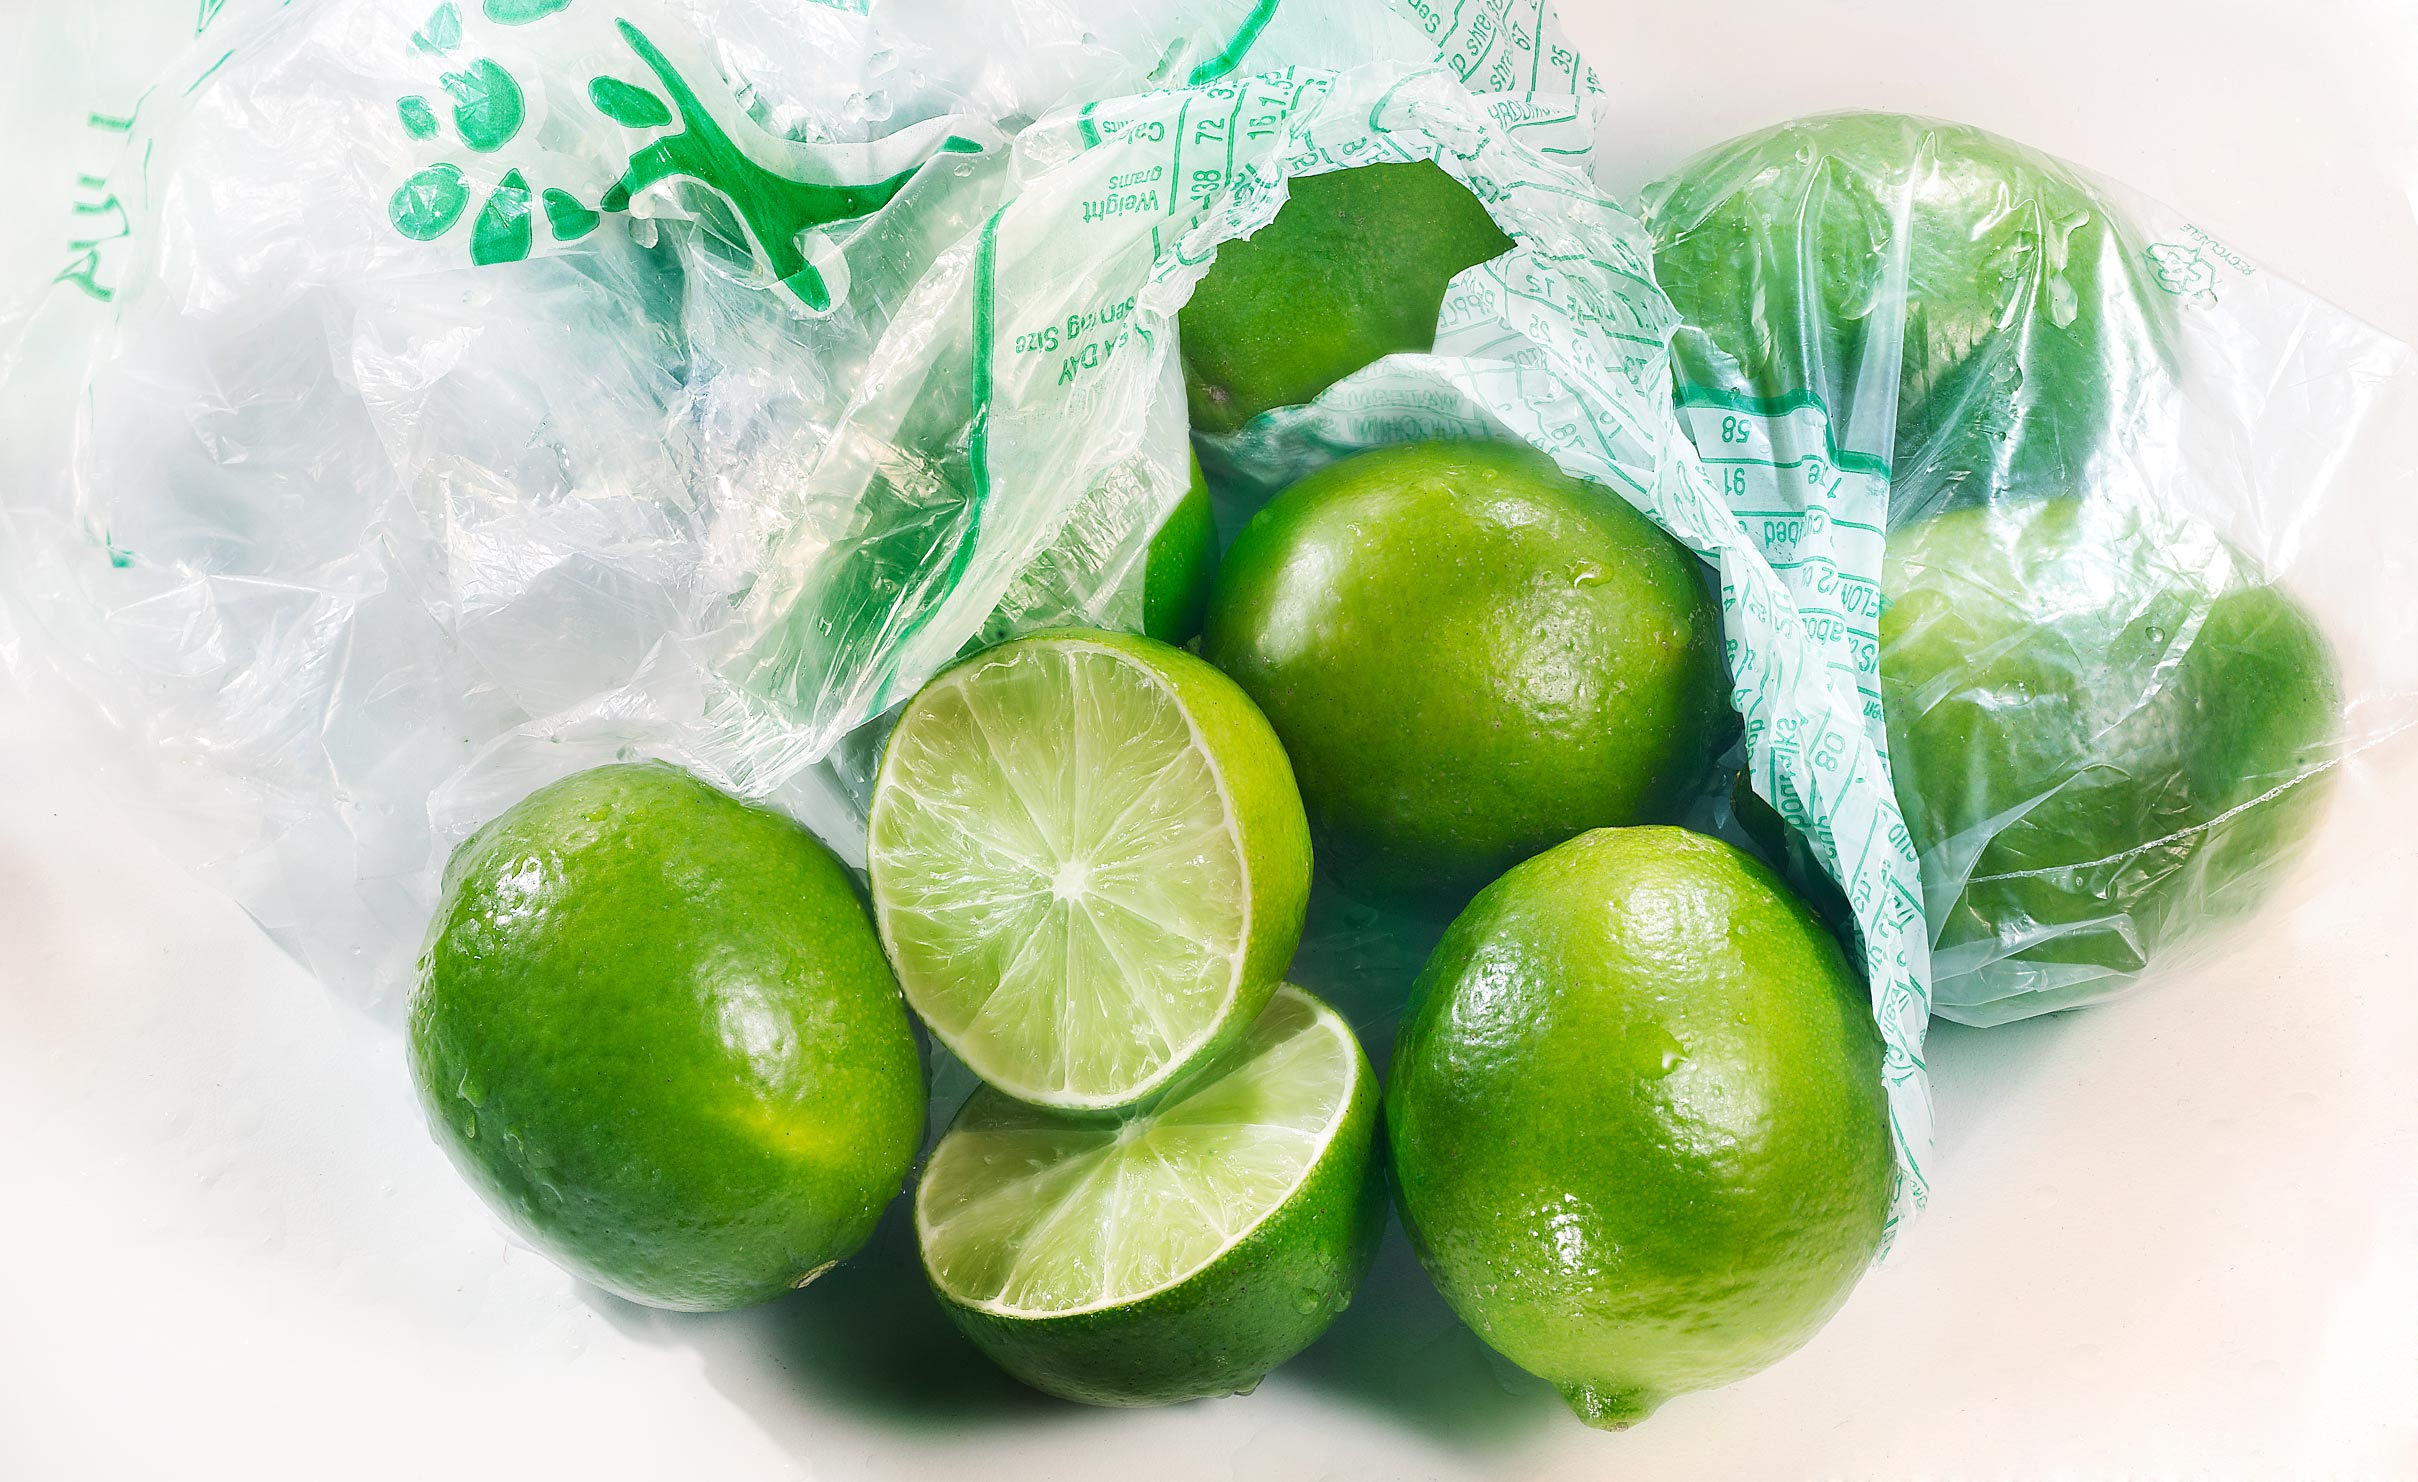 Limes in grocery bag